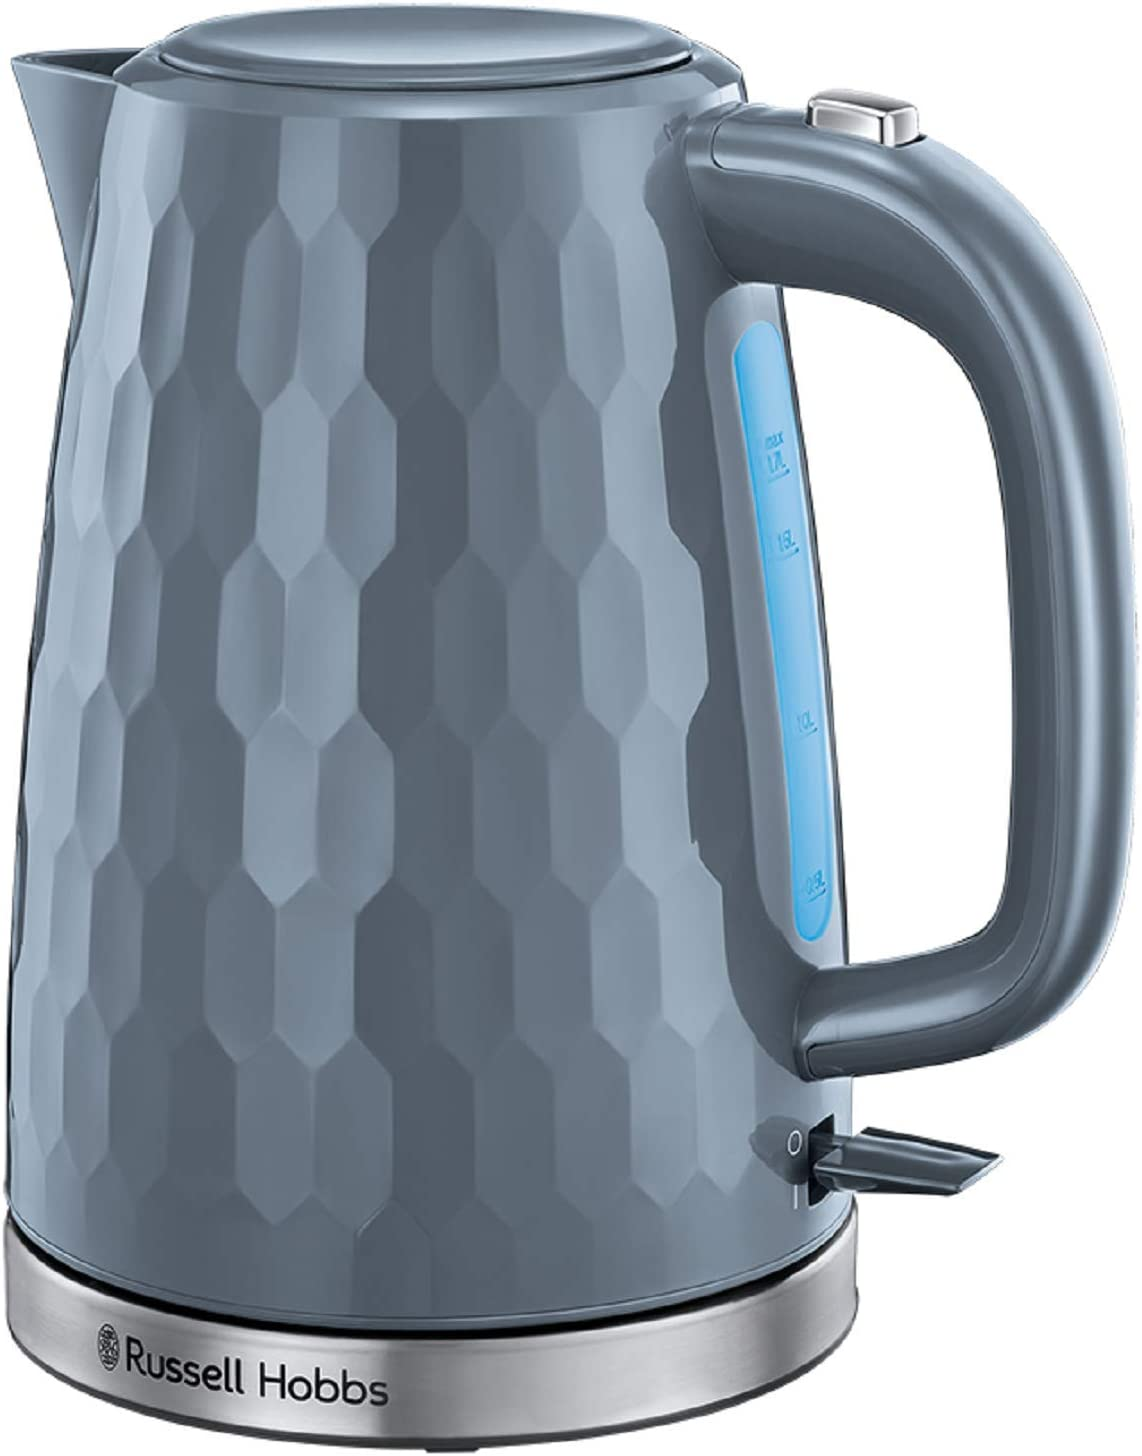 Russell Hobbs 26053 Cordless Electric Kettle Contemporary Honeycomb Design with Fast Boil and Boil Dry Protection, 1.7 Litre, 3000 W, Grey